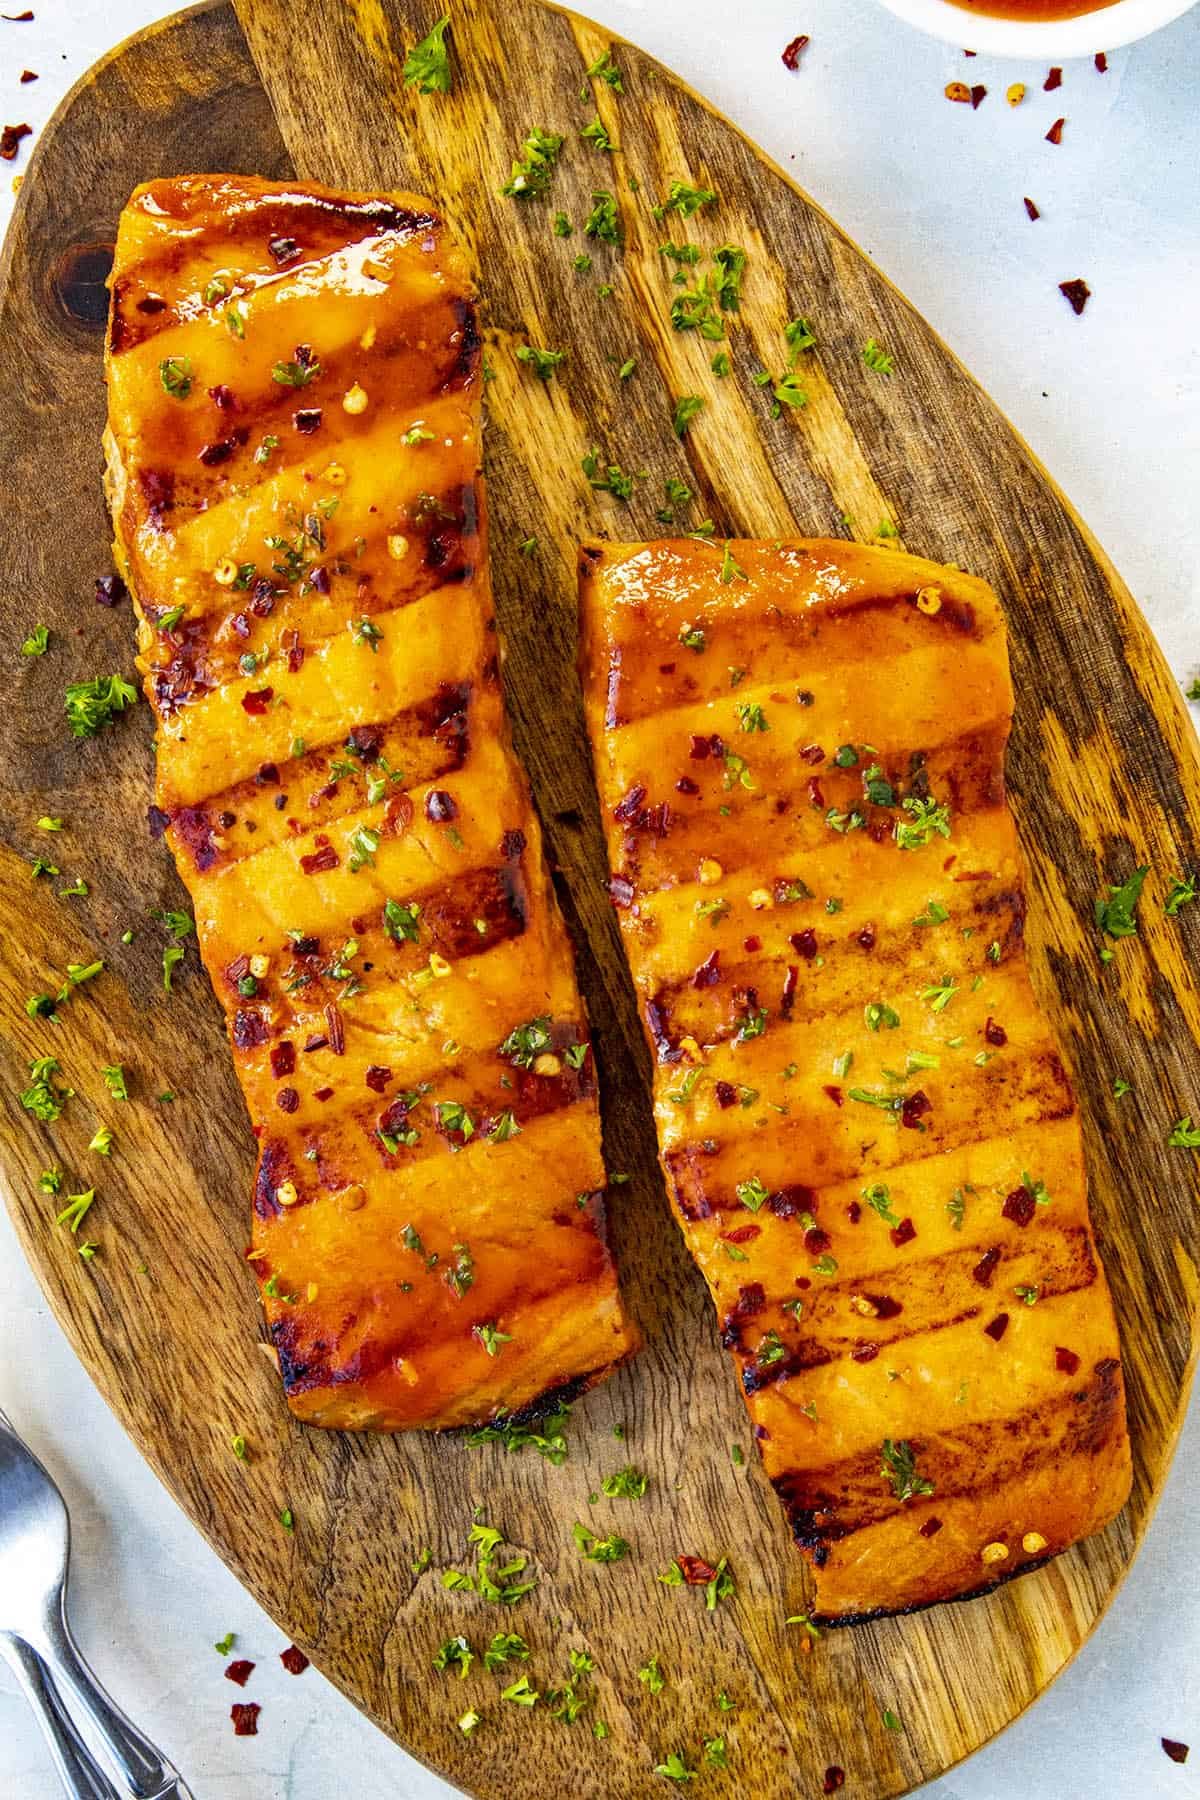 Perfectly seared grilled salmon fillets with honey sriracha sauce